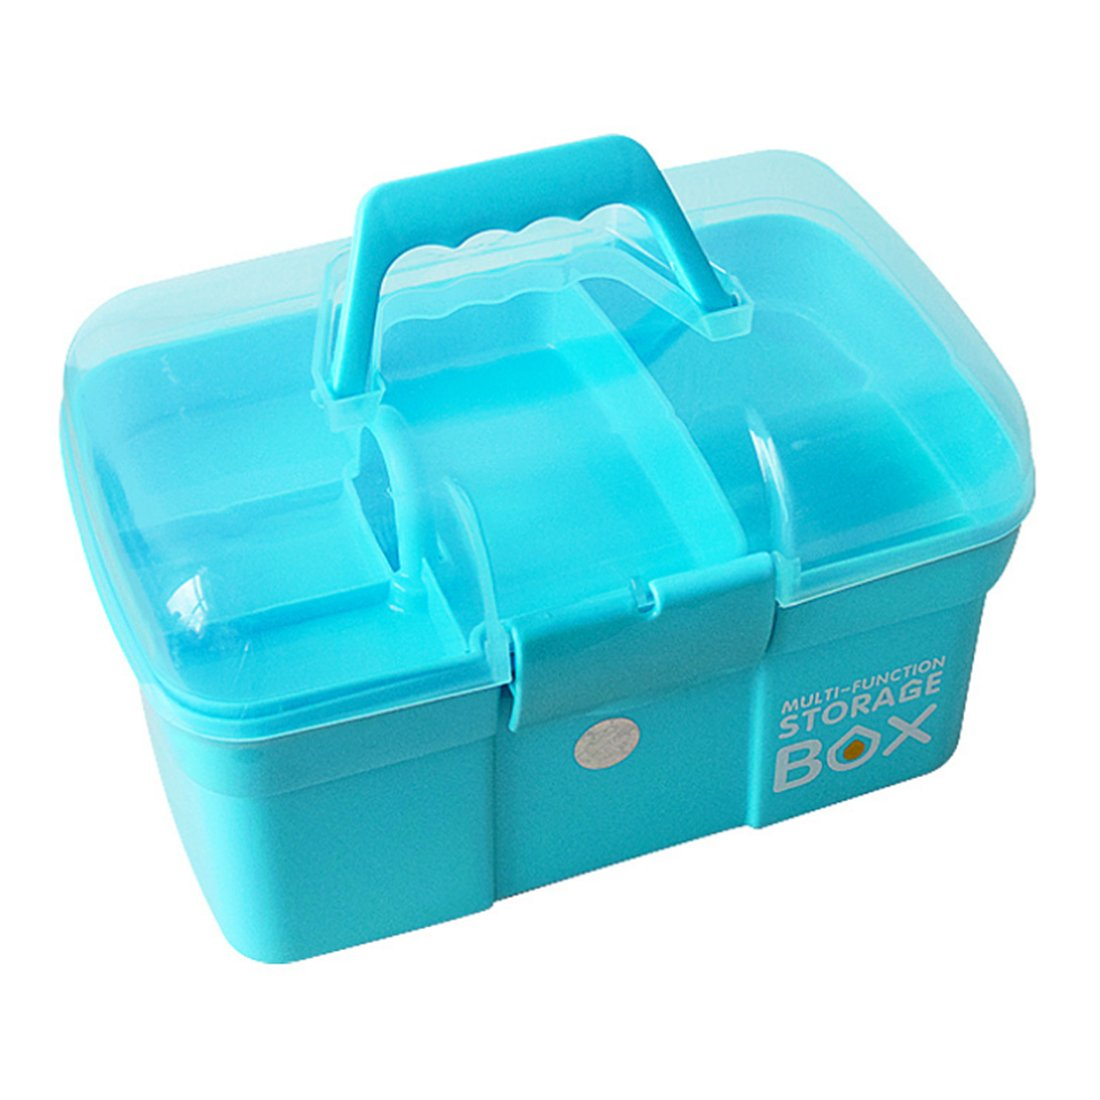 HMANE First Aid Box Multi- function Portable Handled Organizer Storage Box Family Emergency Kit Storage Case - (Blue)